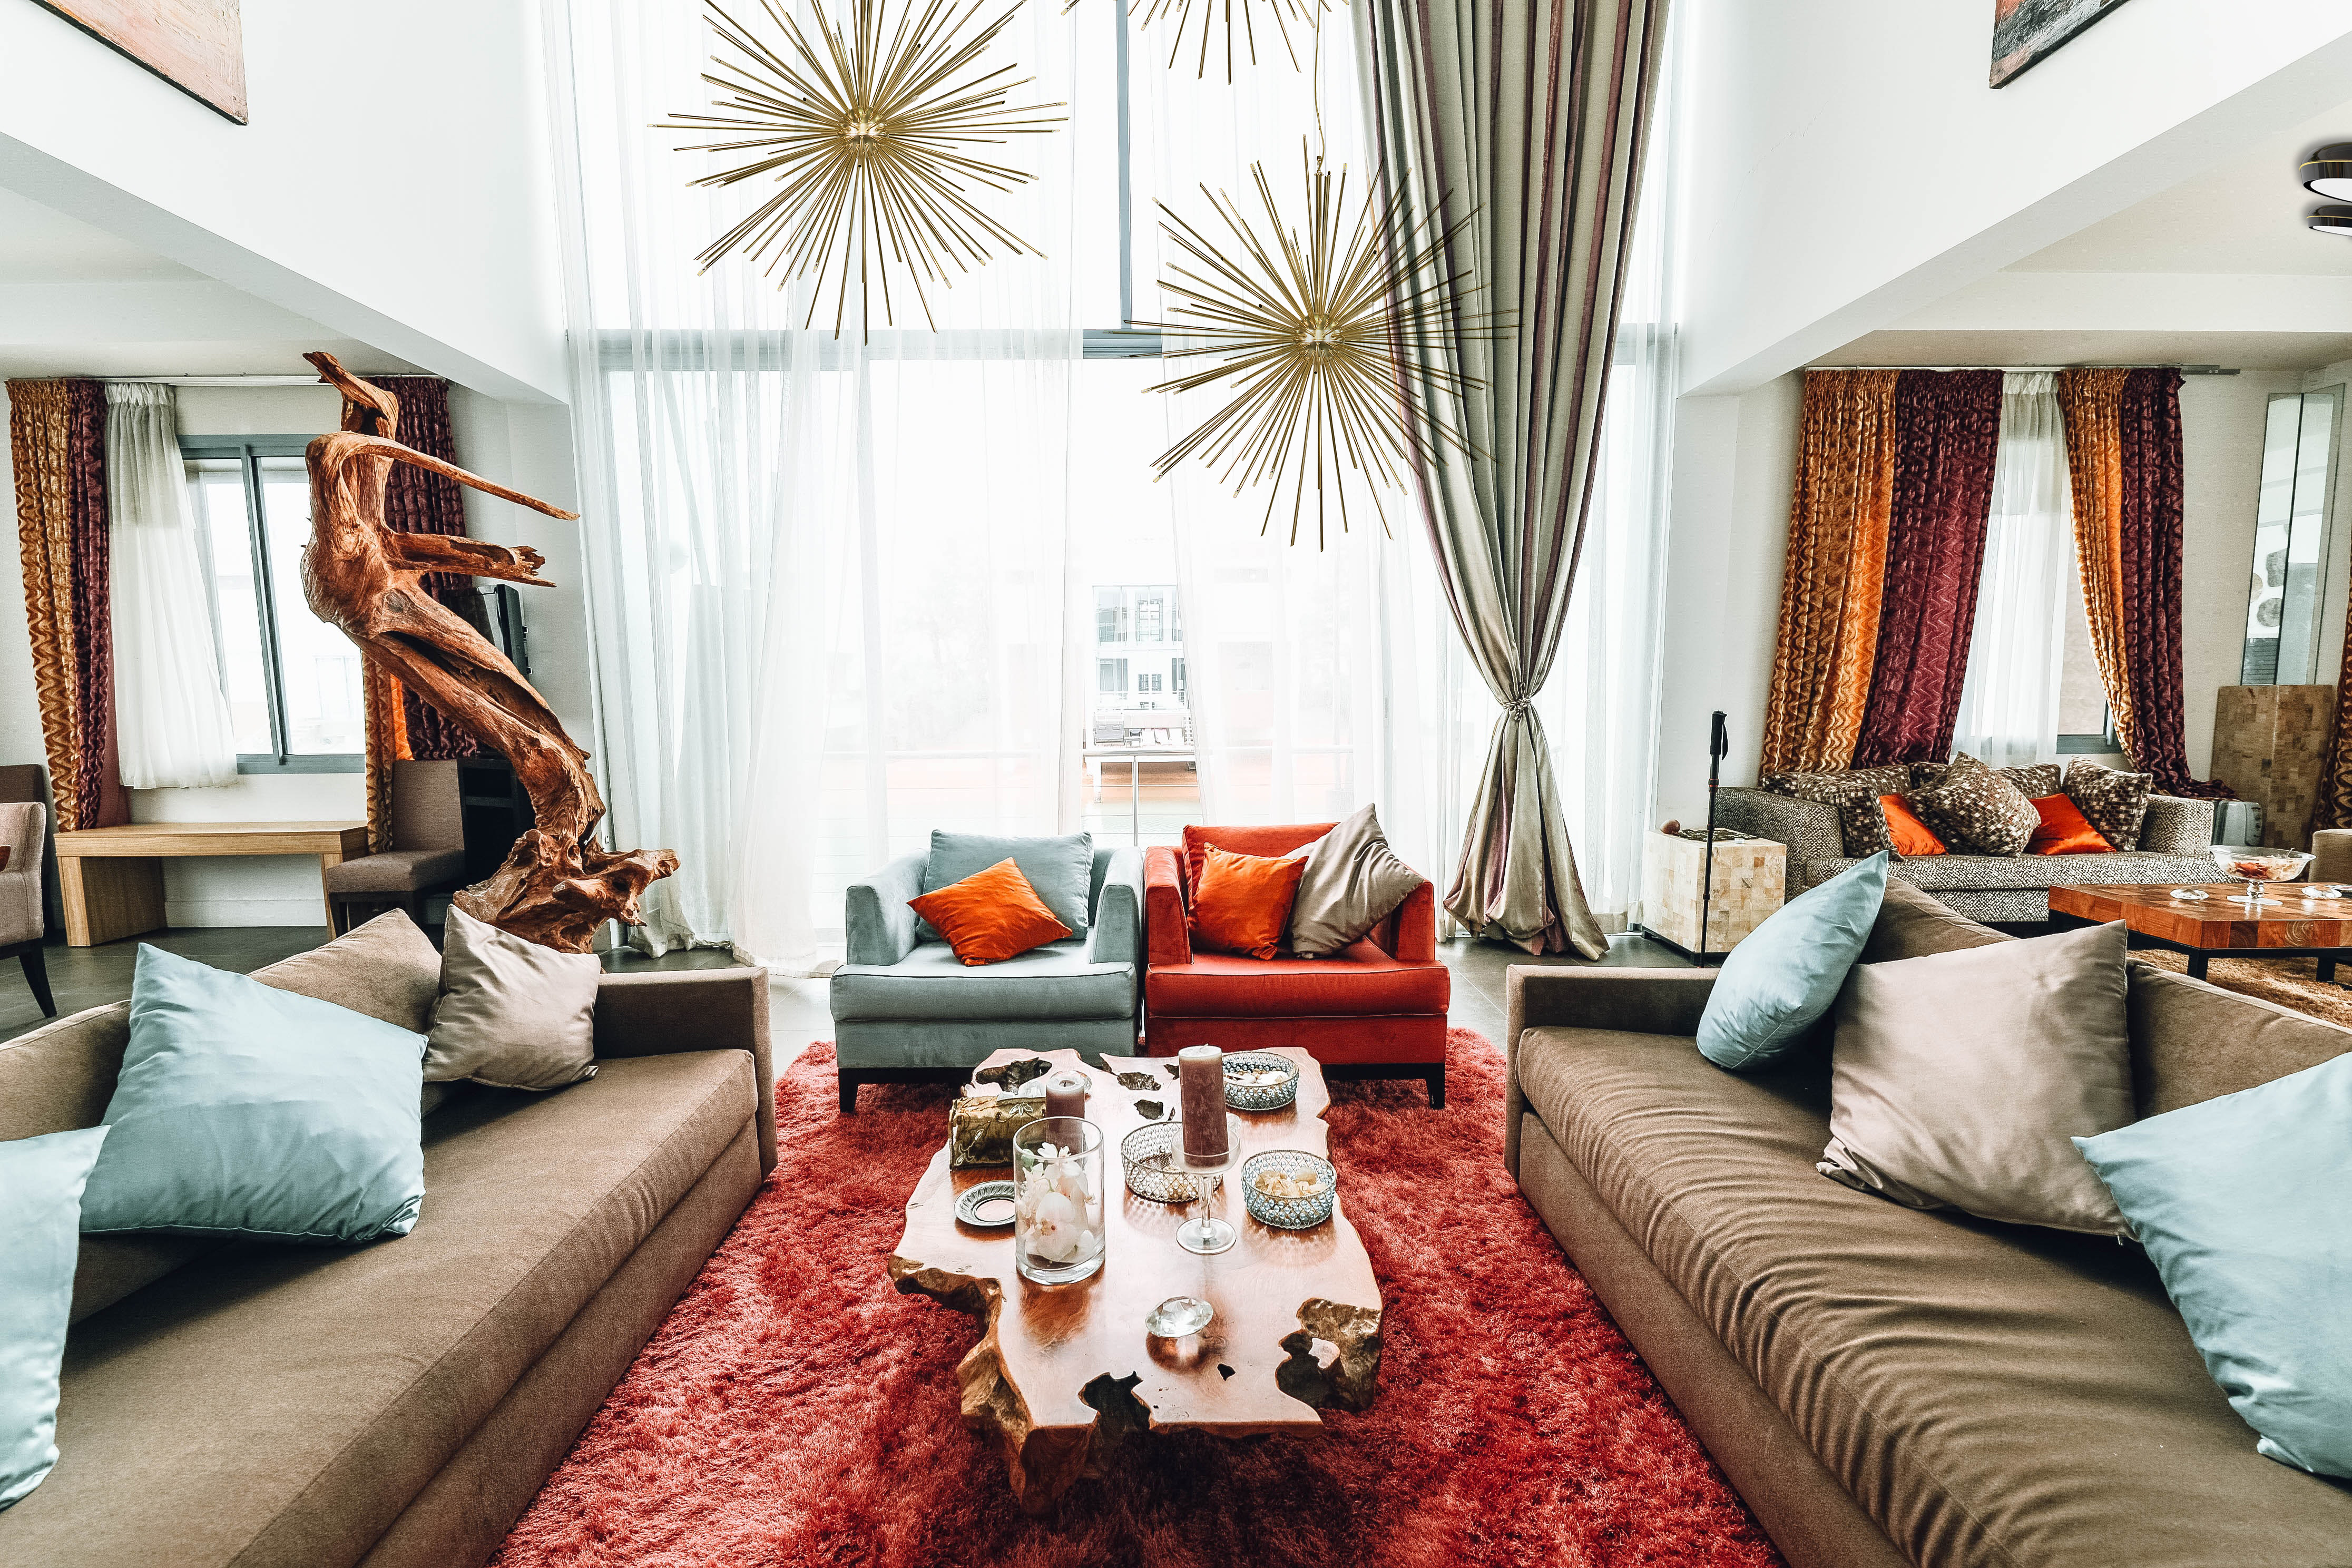 What's Hot on Pinterest 7 Bohemian Interior Design Ideas (2)